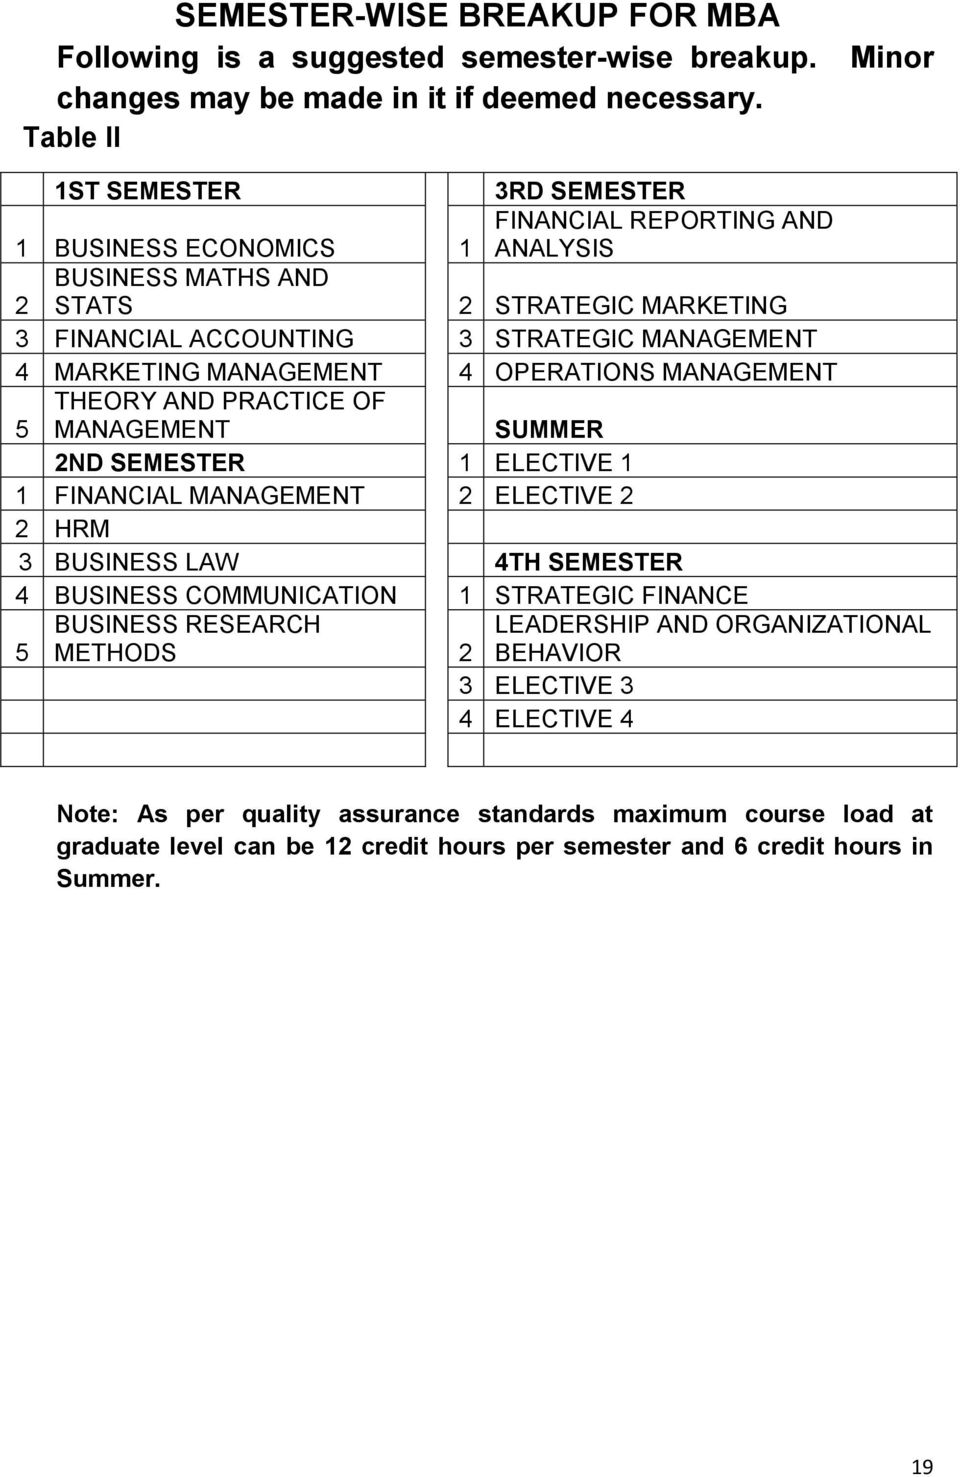 MARKETING MANAGEMENT 4 OPERATIONS MANAGEMENT 5 THEORY AND PRACTICE OF MANAGEMENT SUMMER 2ND SEMESTER 1 ELECTIVE 1 1 FINANCIAL MANAGEMENT 2 ELECTIVE 2 2 HRM 3 BUSINESS LAW 4TH SEMESTER 4 BUSINESS